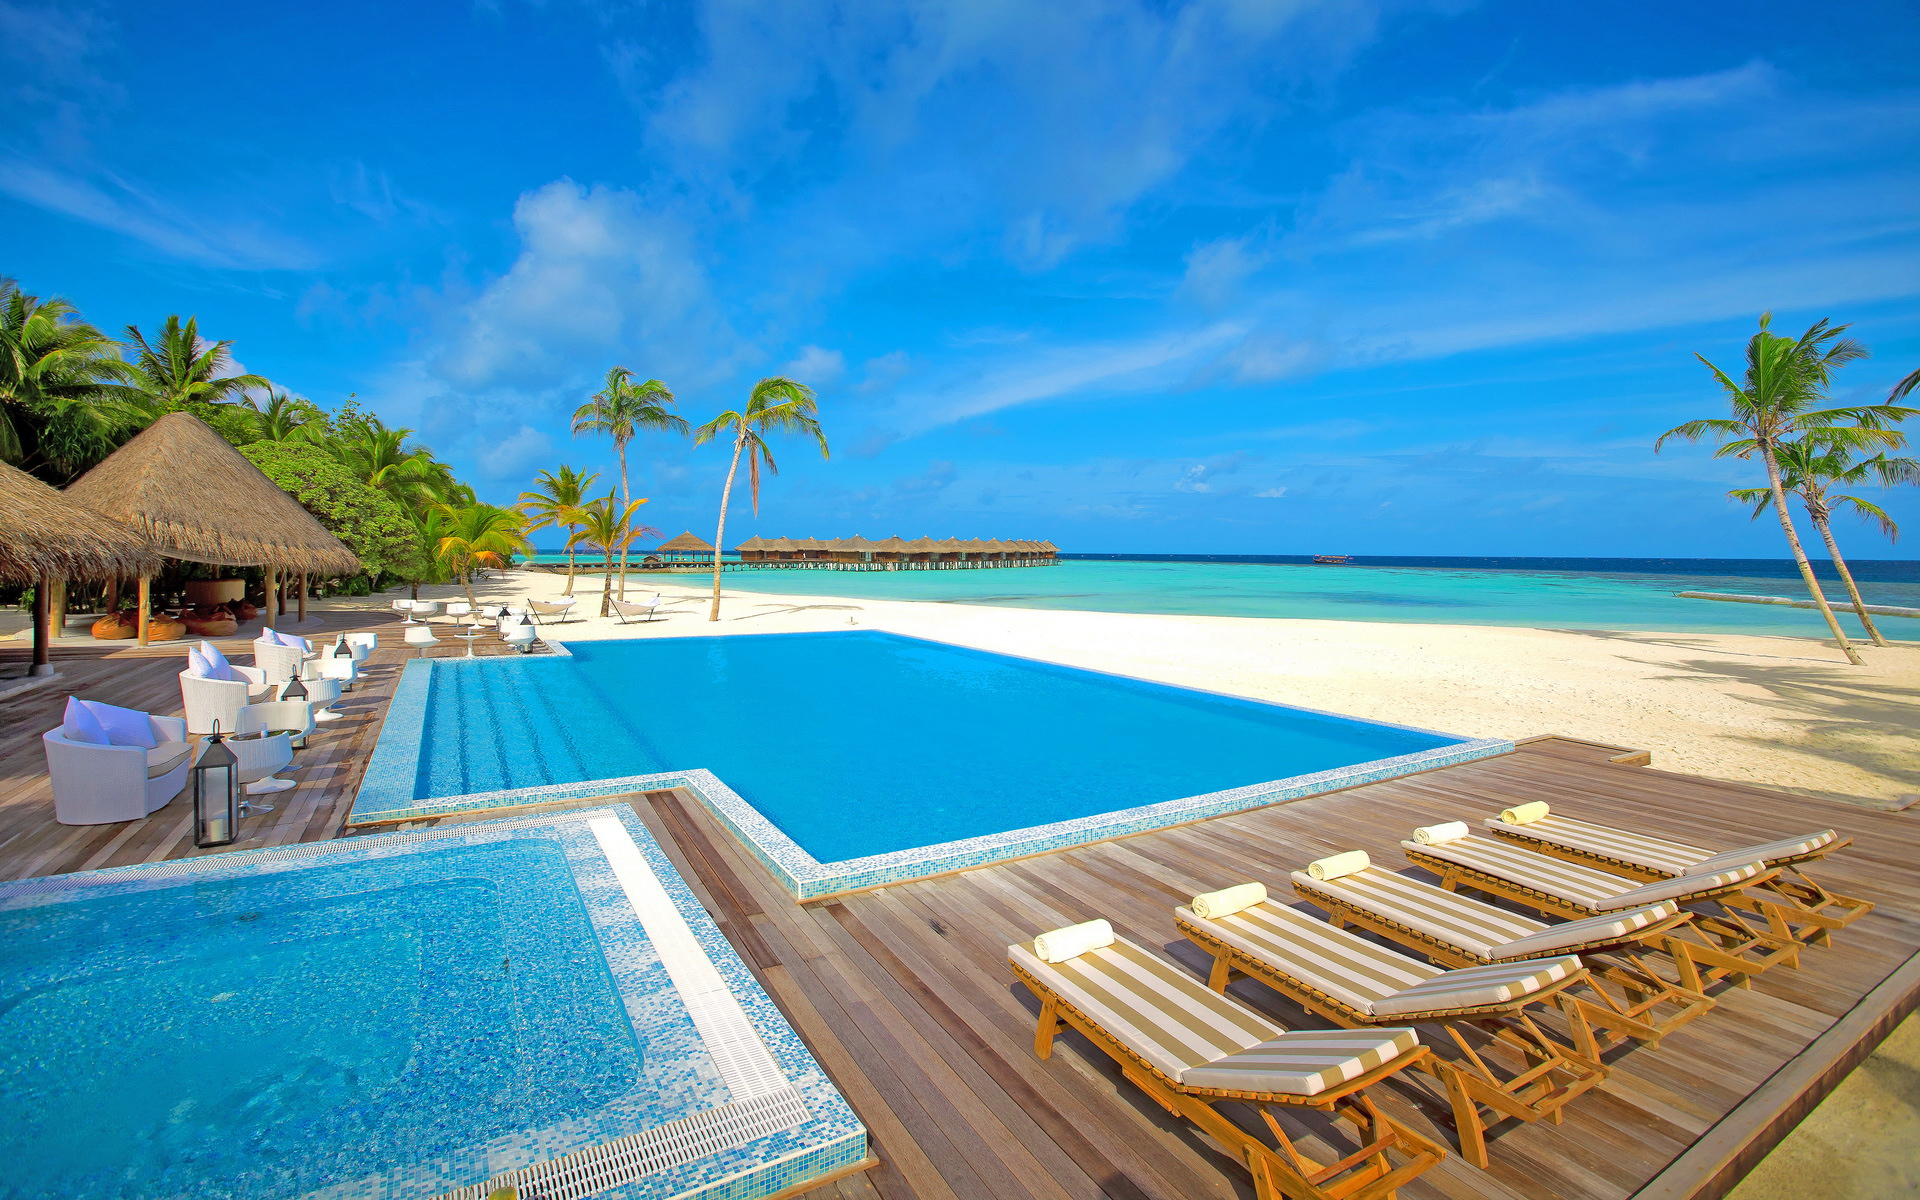 Pool Resort Maldives wallpaper | 1920x1200 | #31427